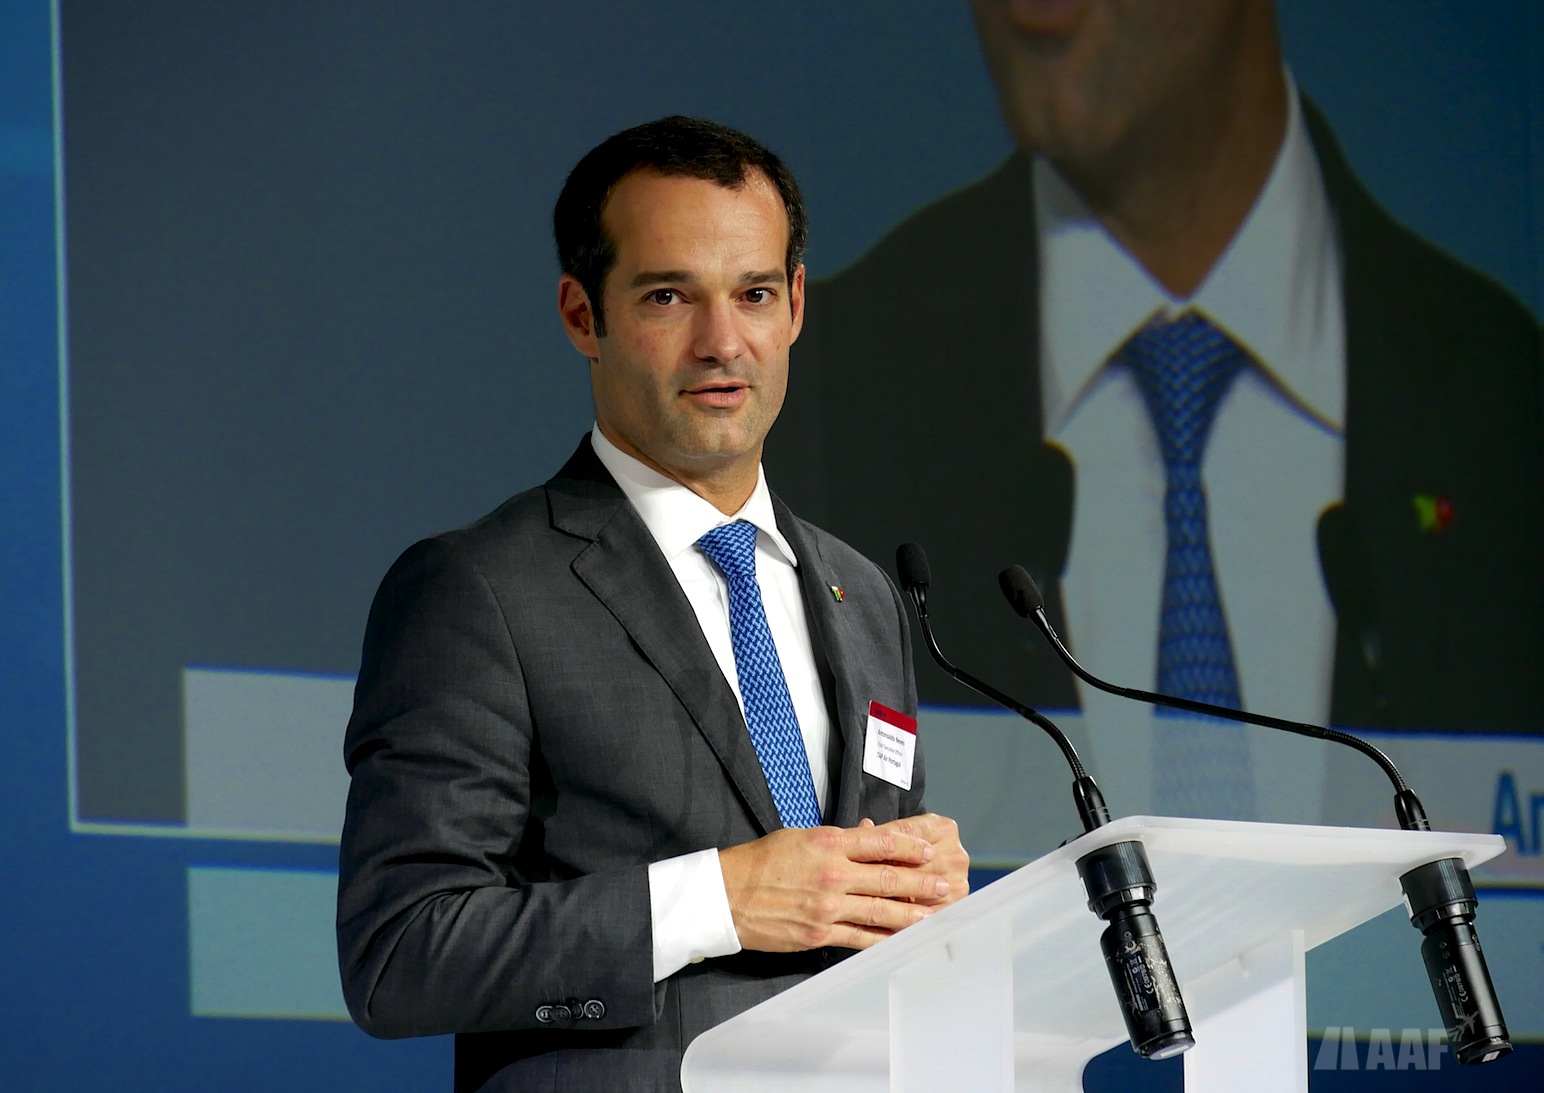 Antonoaldo Neves, CEO de TAP Air Portugal © AAF - reproduction interdite